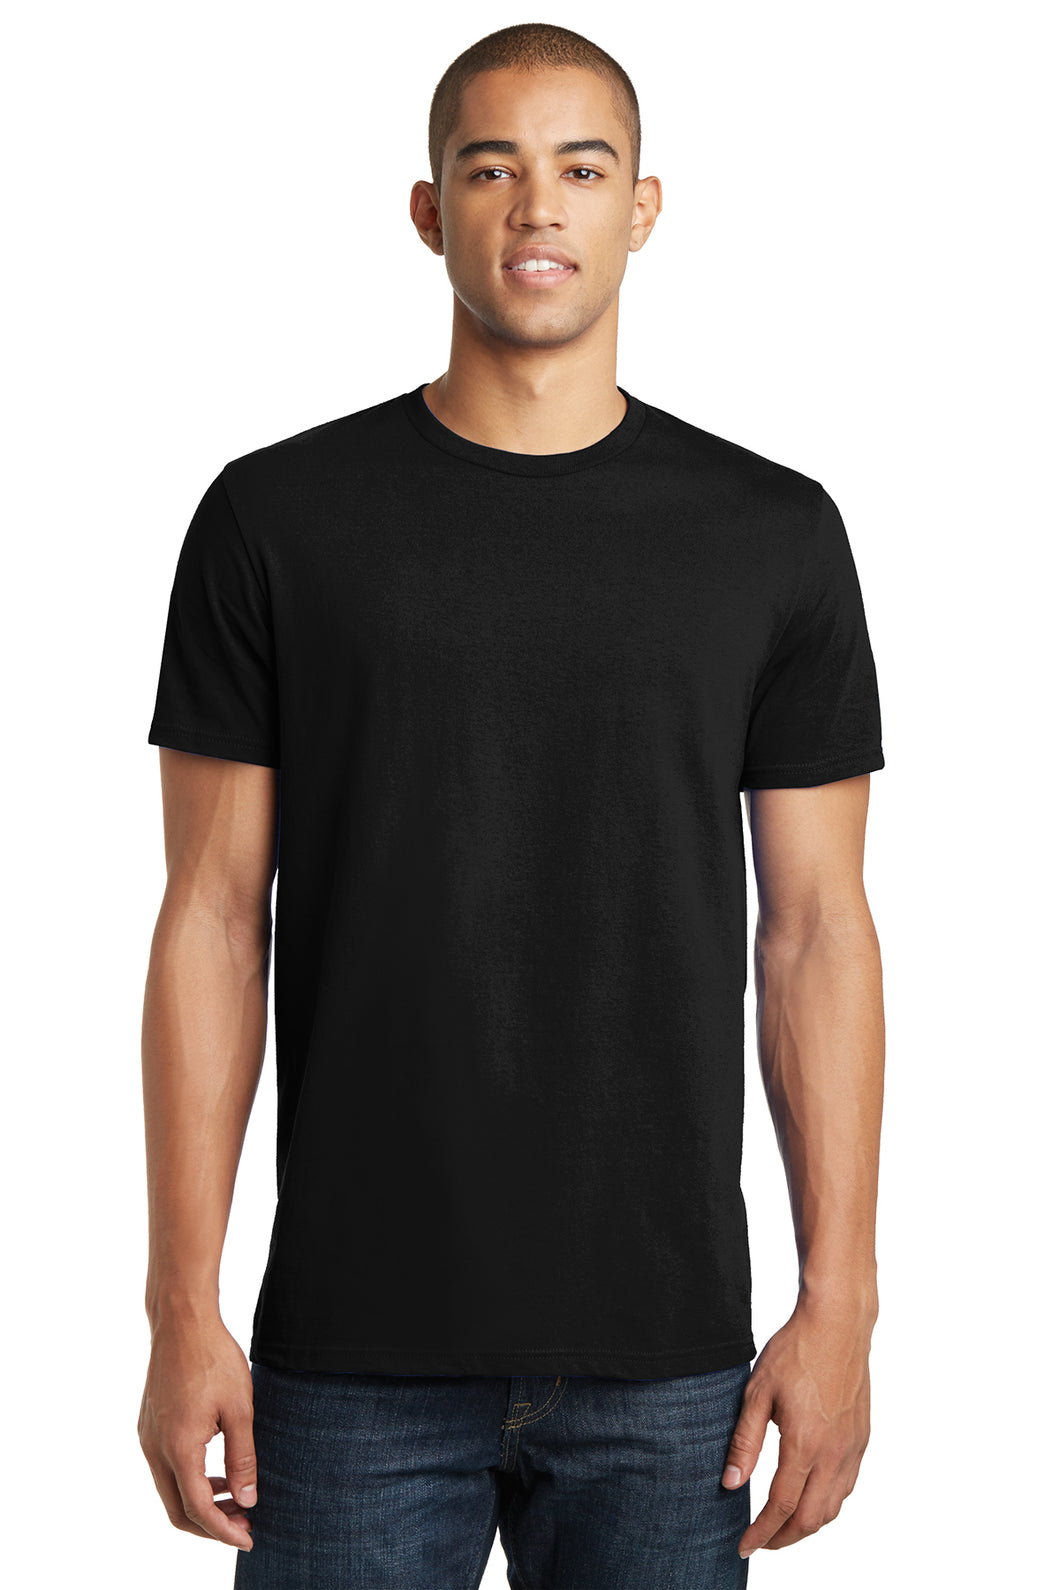 District ® The Concert Tee ® DT5000 (XS, S, M, L)